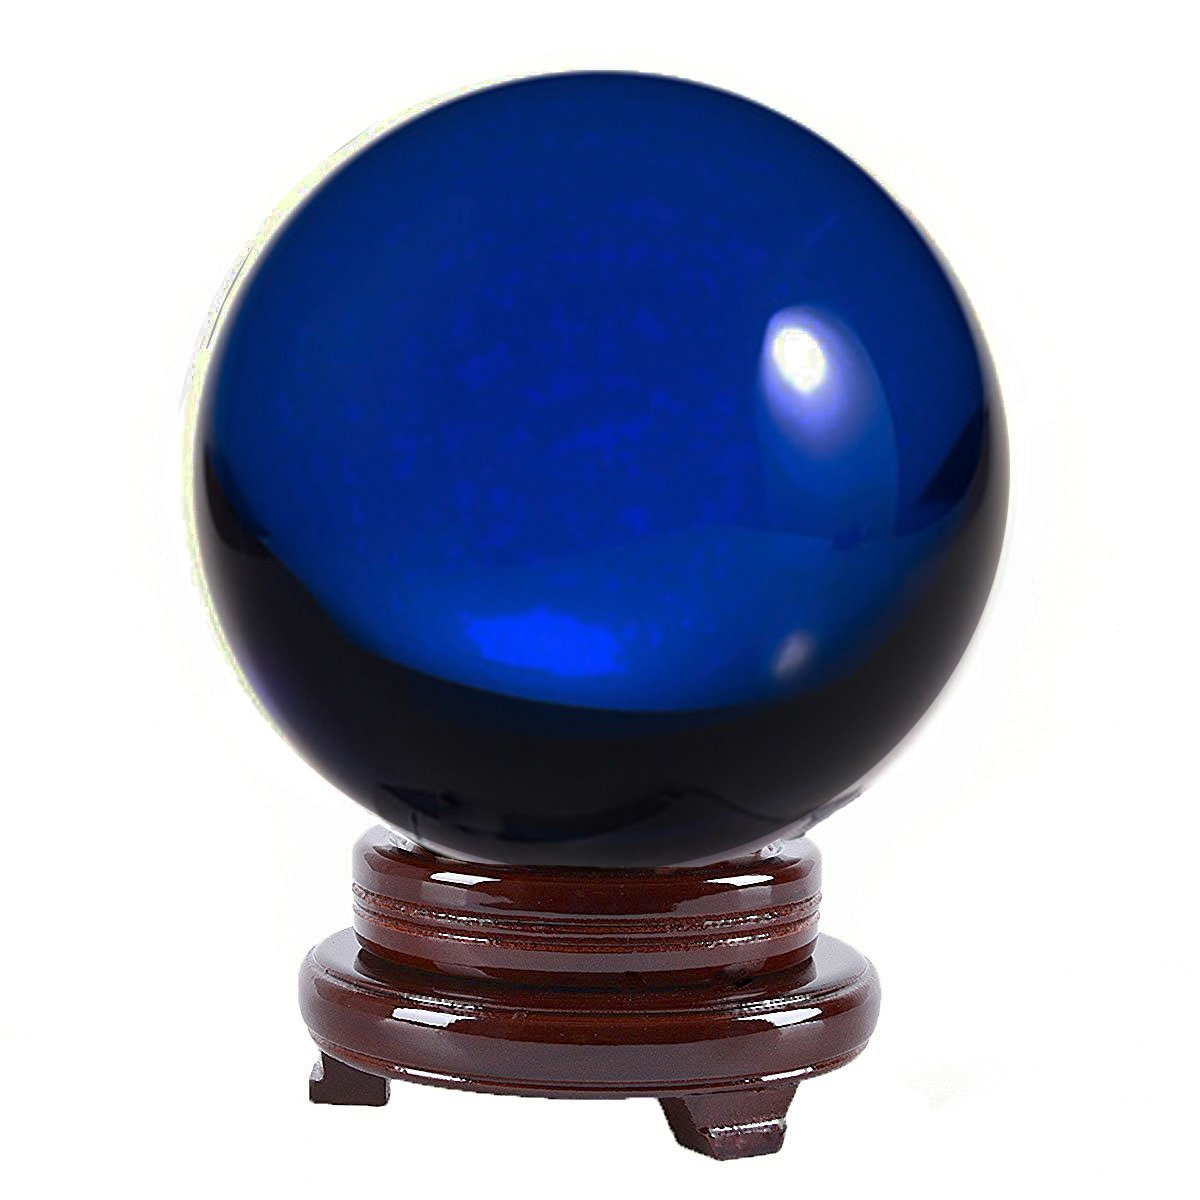 Amlong Crystal 8 inch (200mm) Blue Crystal Ball including Wooden Stand and Gift Package by Amlong Crystal (Image #1)